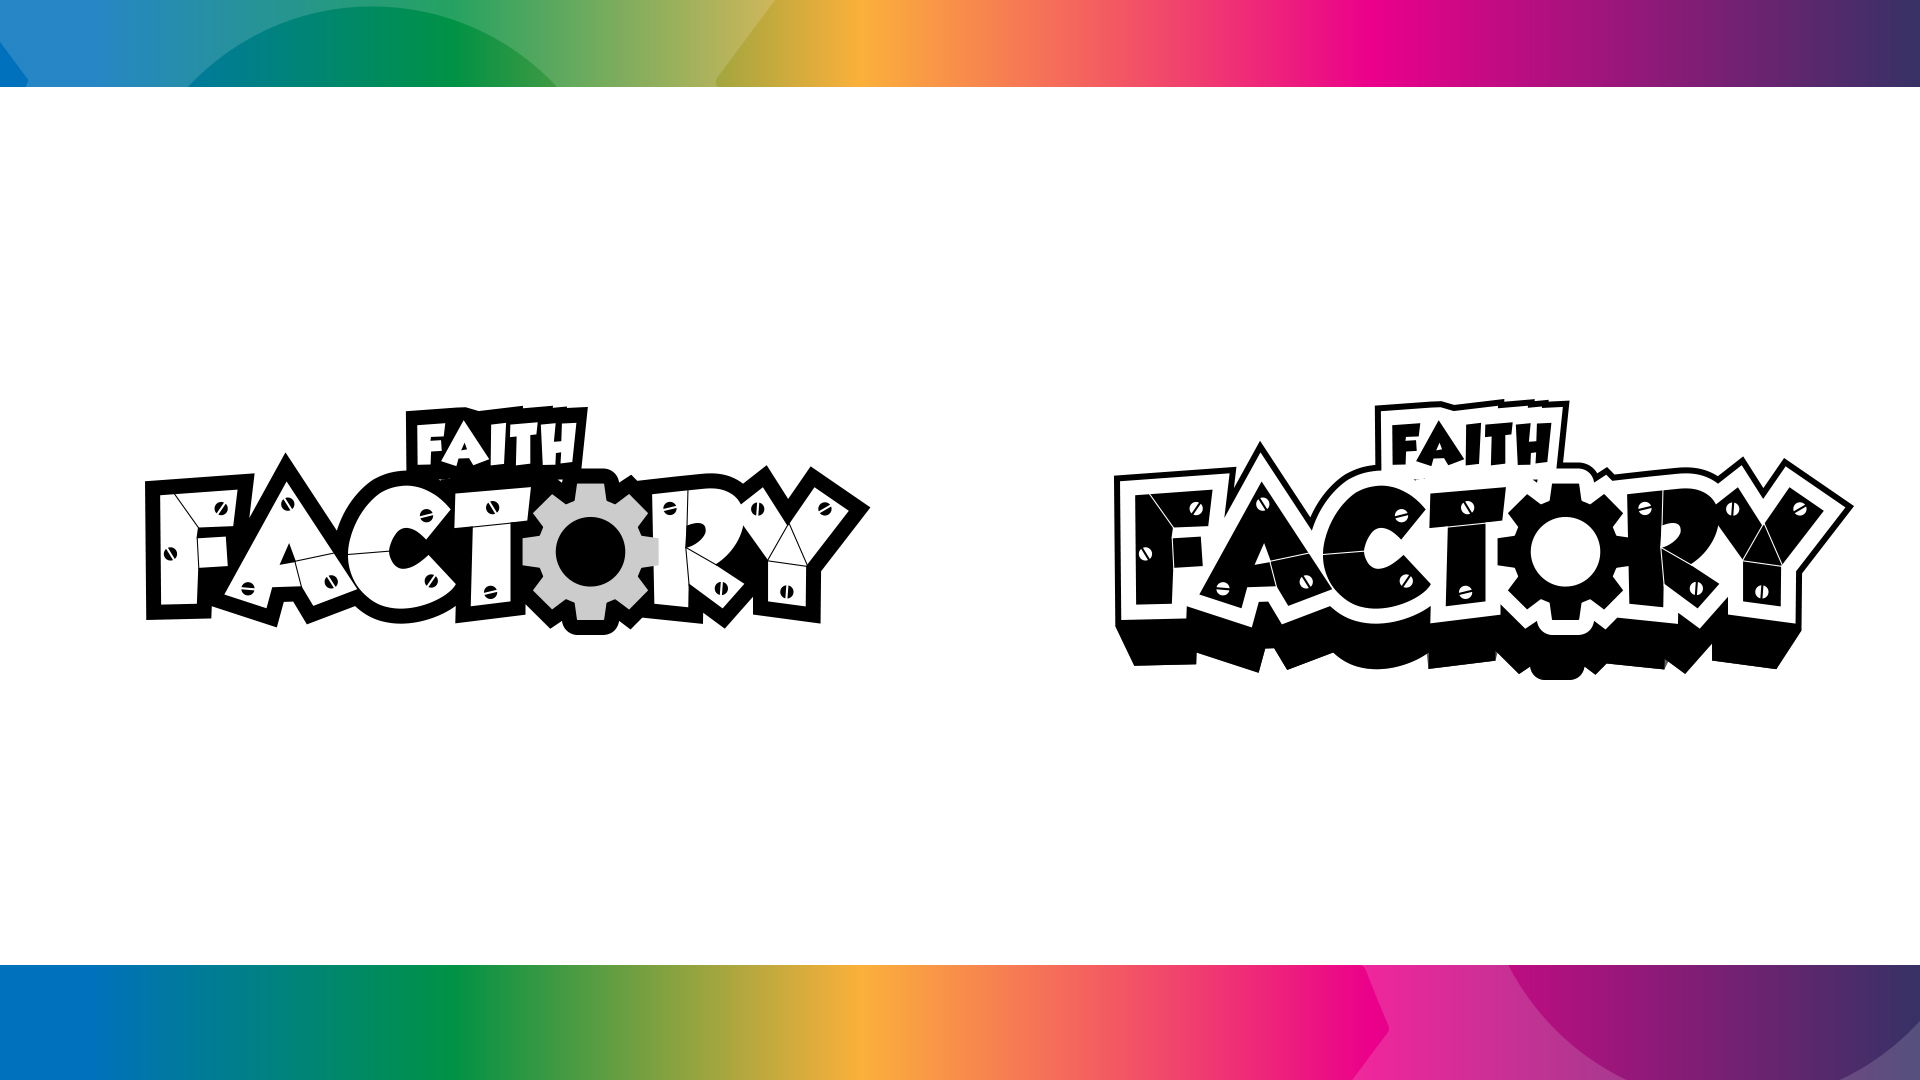 Different variations of the logo in black and white. Showcases the versatility of the design.